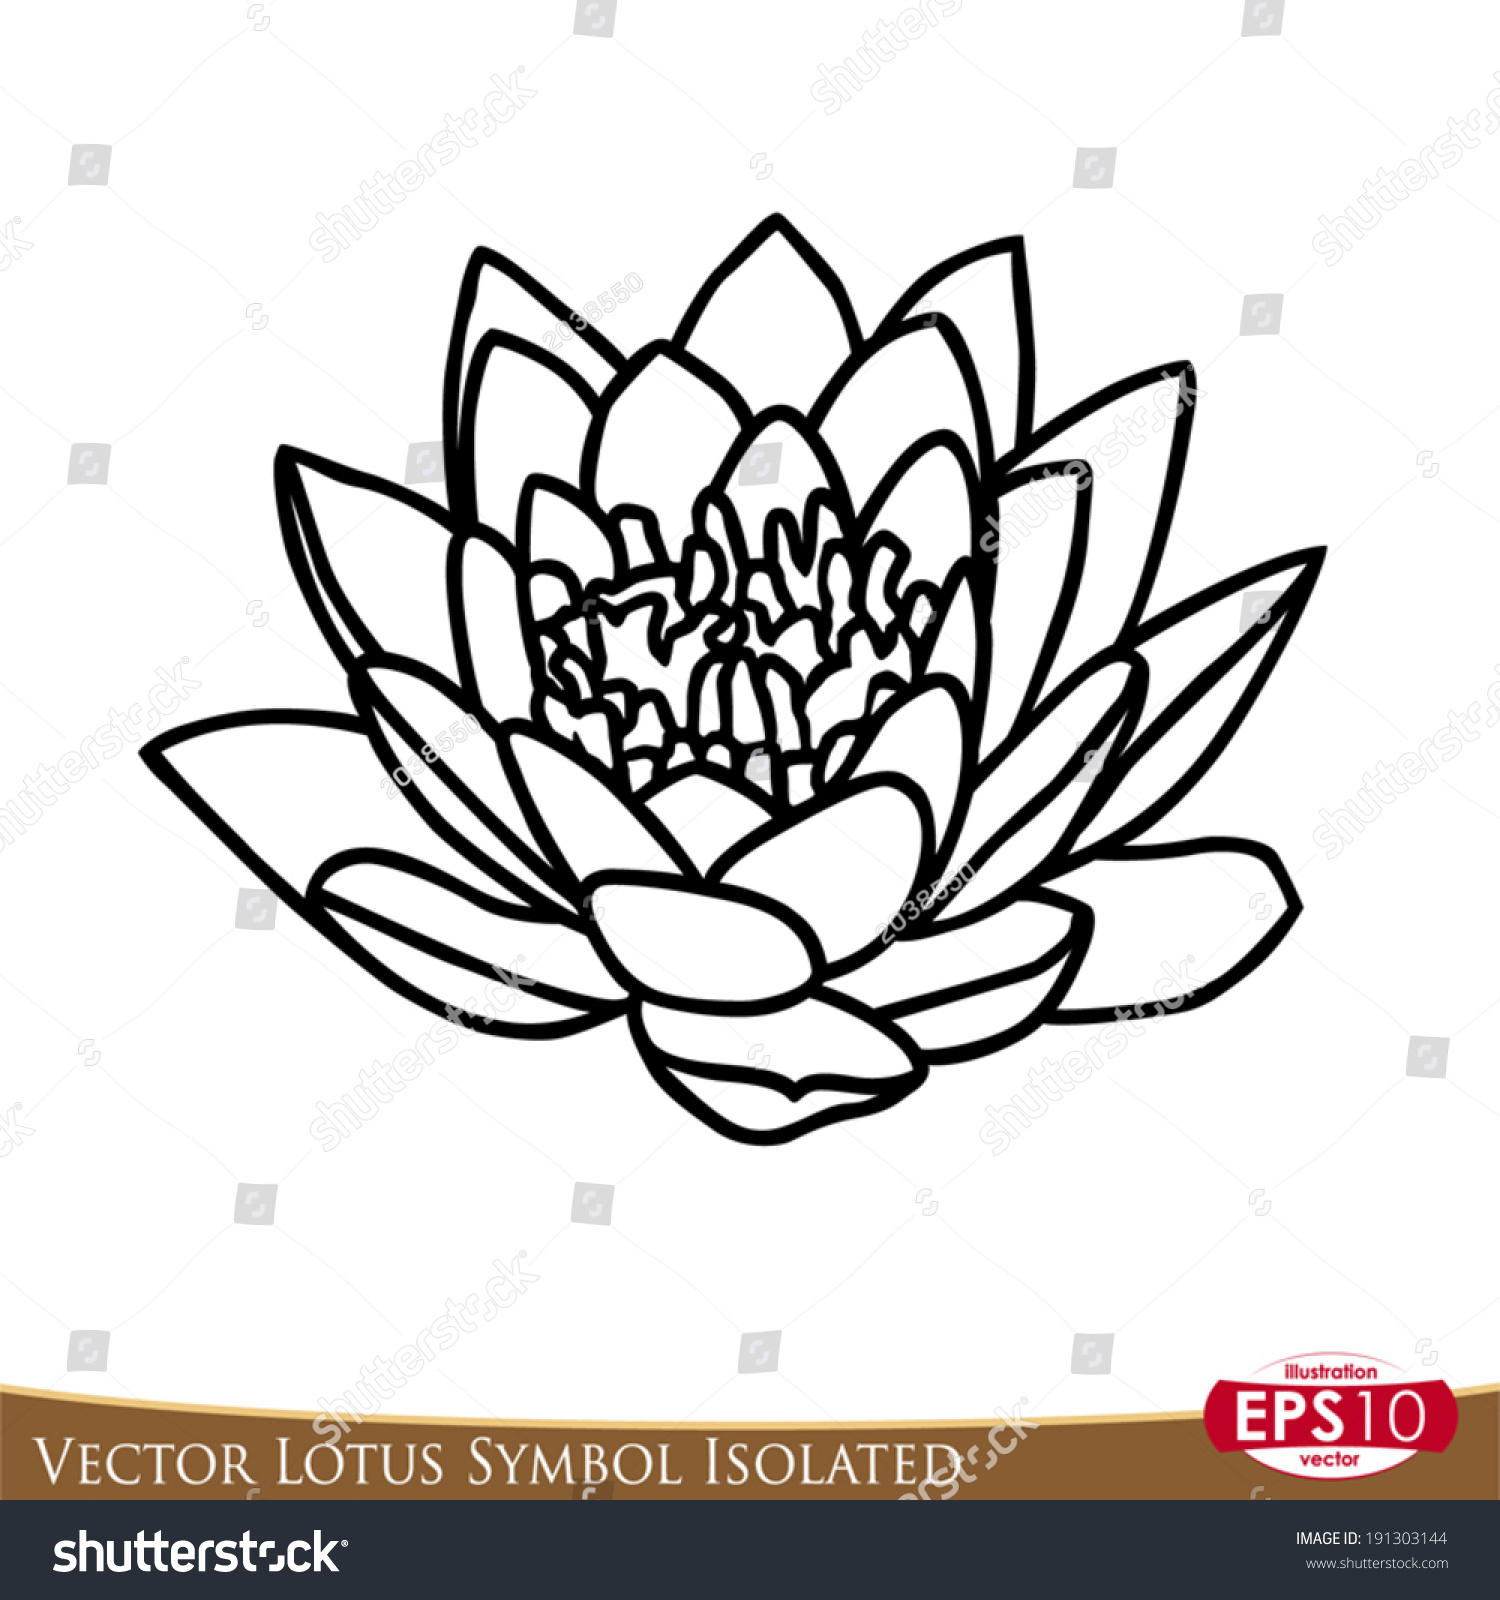 Vector illustration lotus flower isolated on stock vector royalty vector illustration of lotus flower isolated on white background draw in symbolic style with black izmirmasajfo